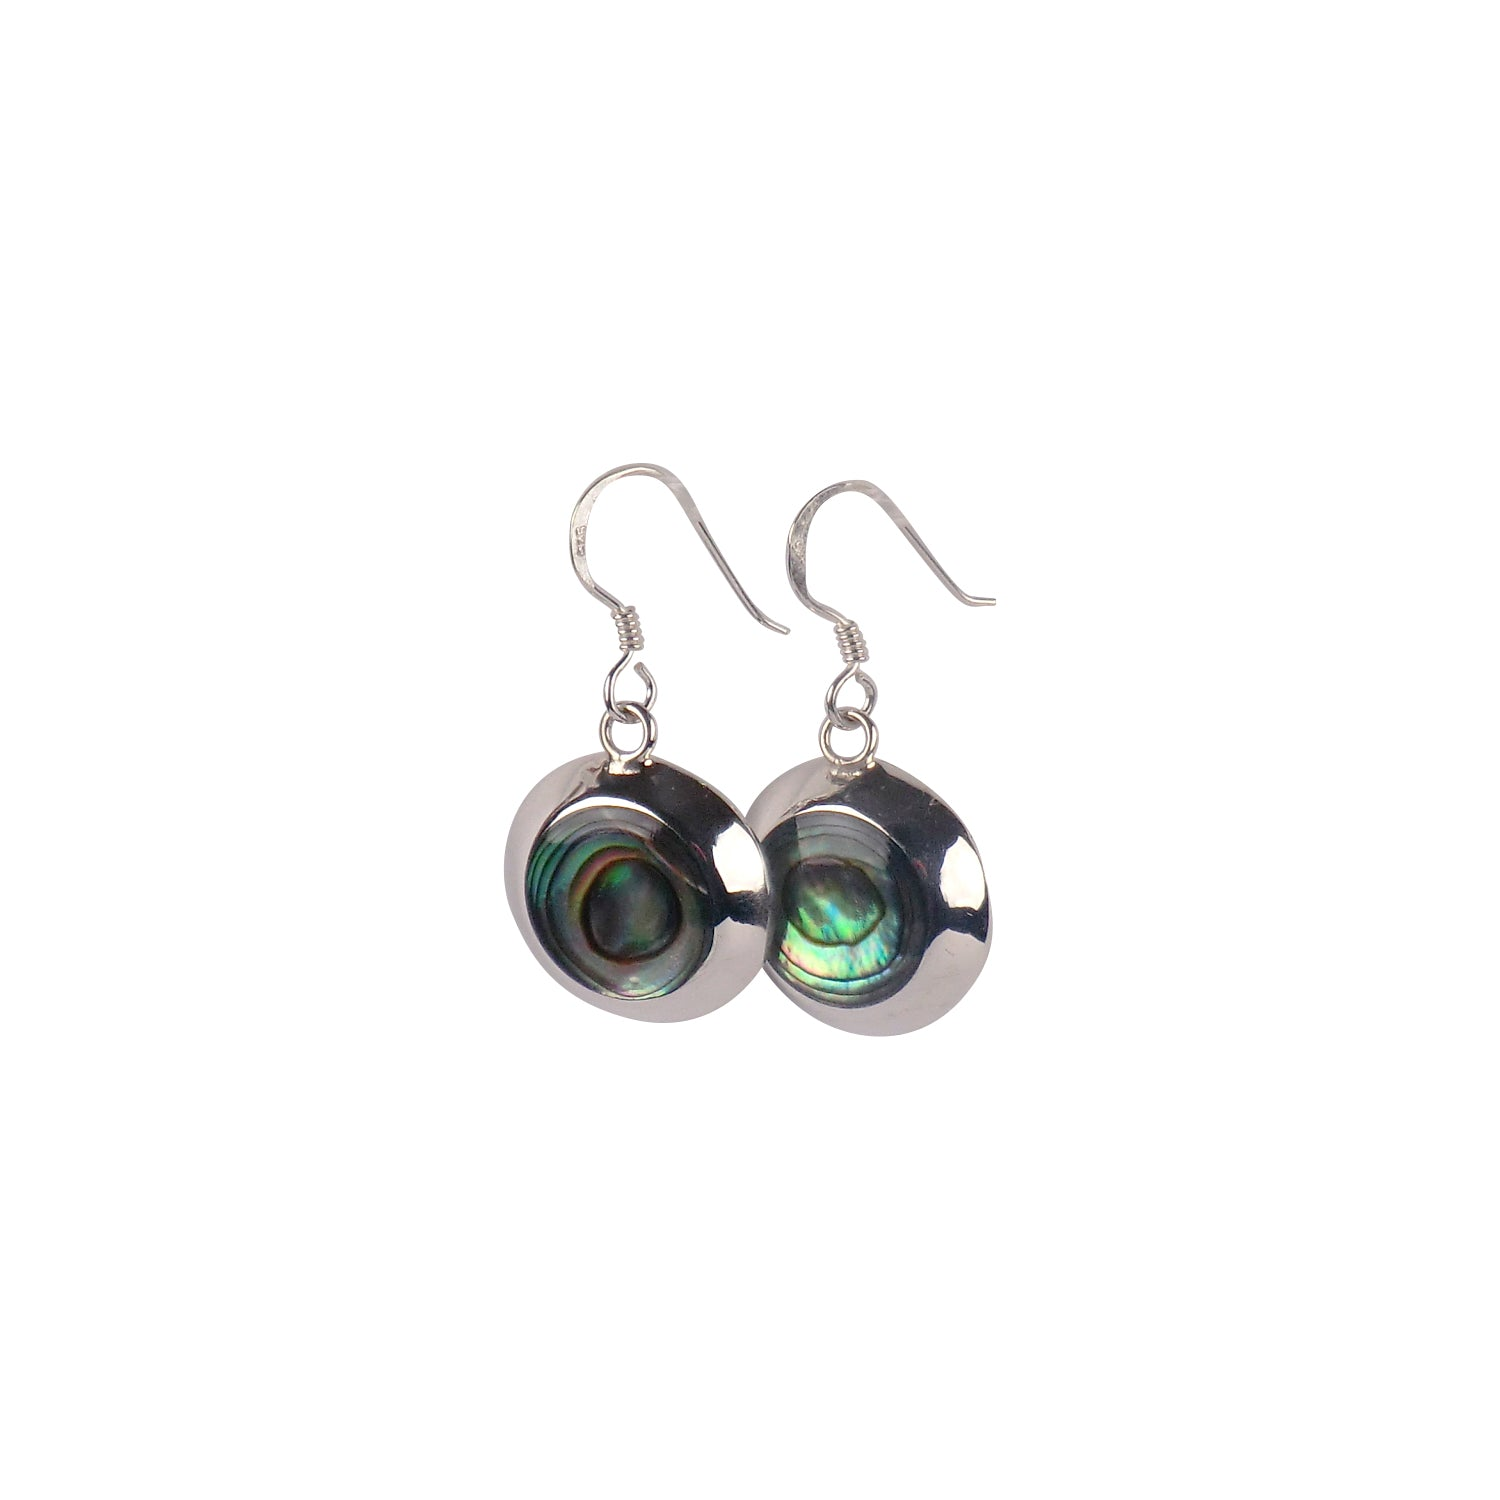 Circular Silver Earrings - Matico